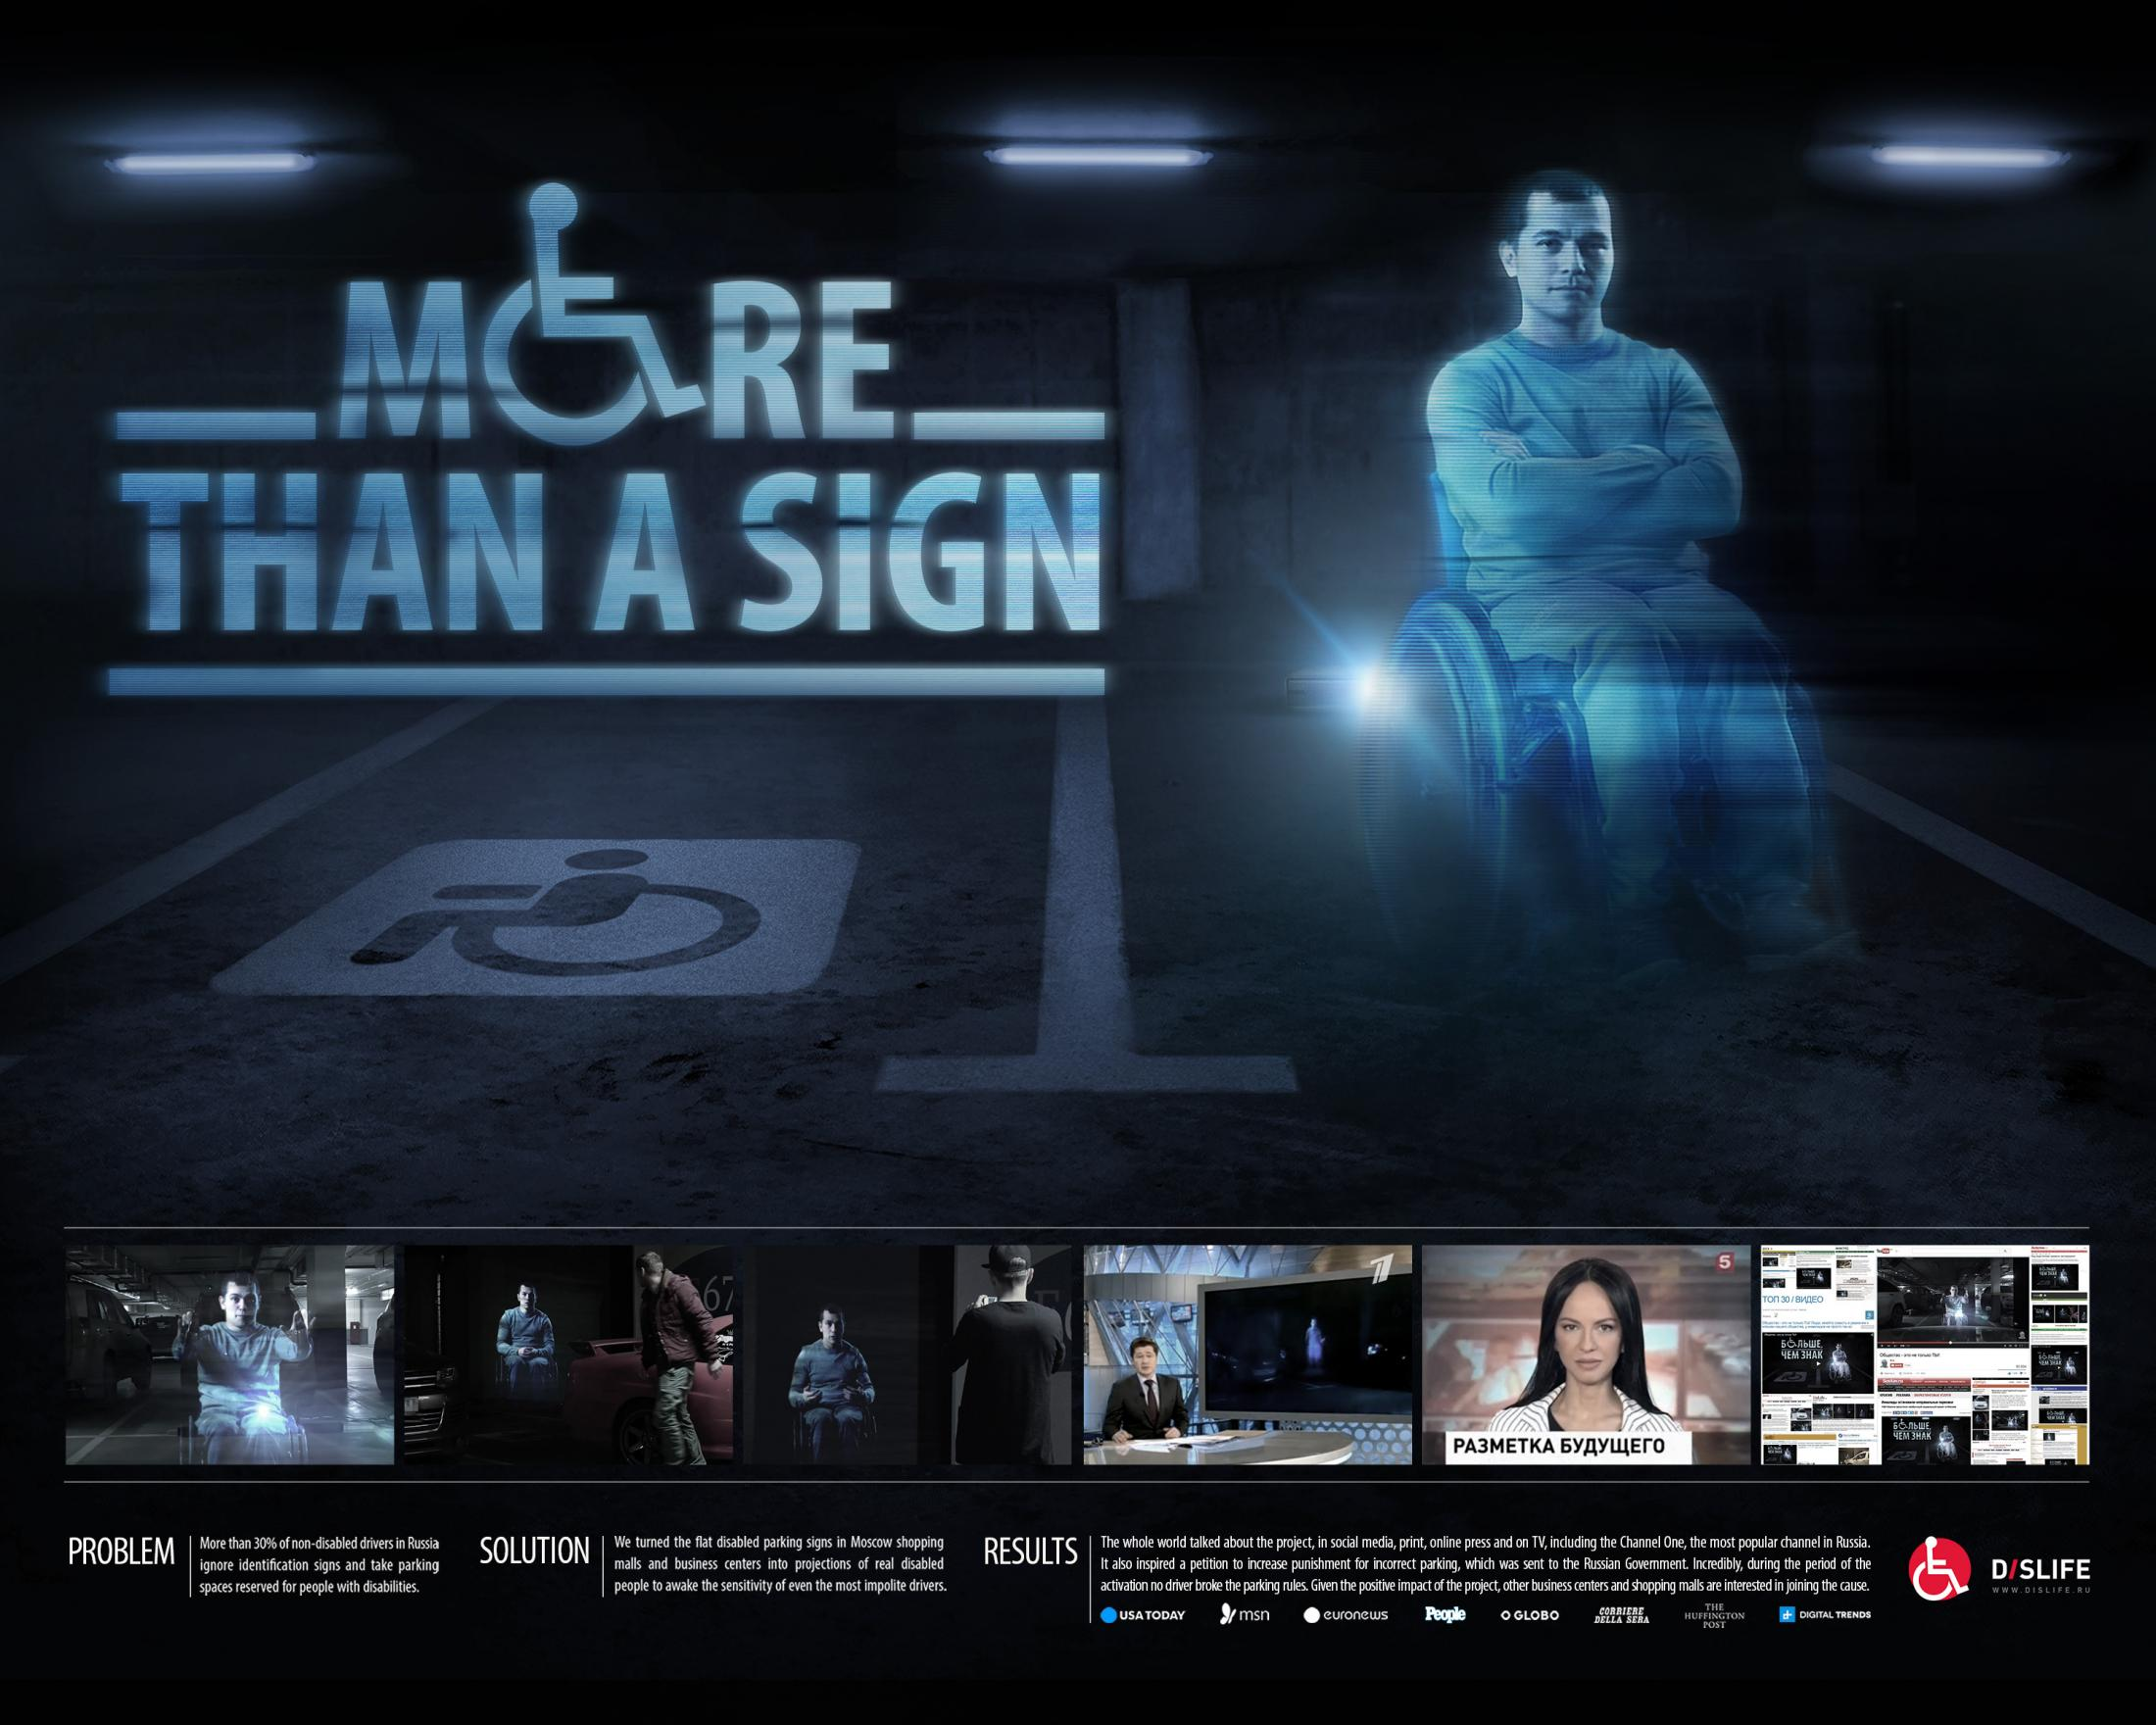 Thumbnail for More than a sign